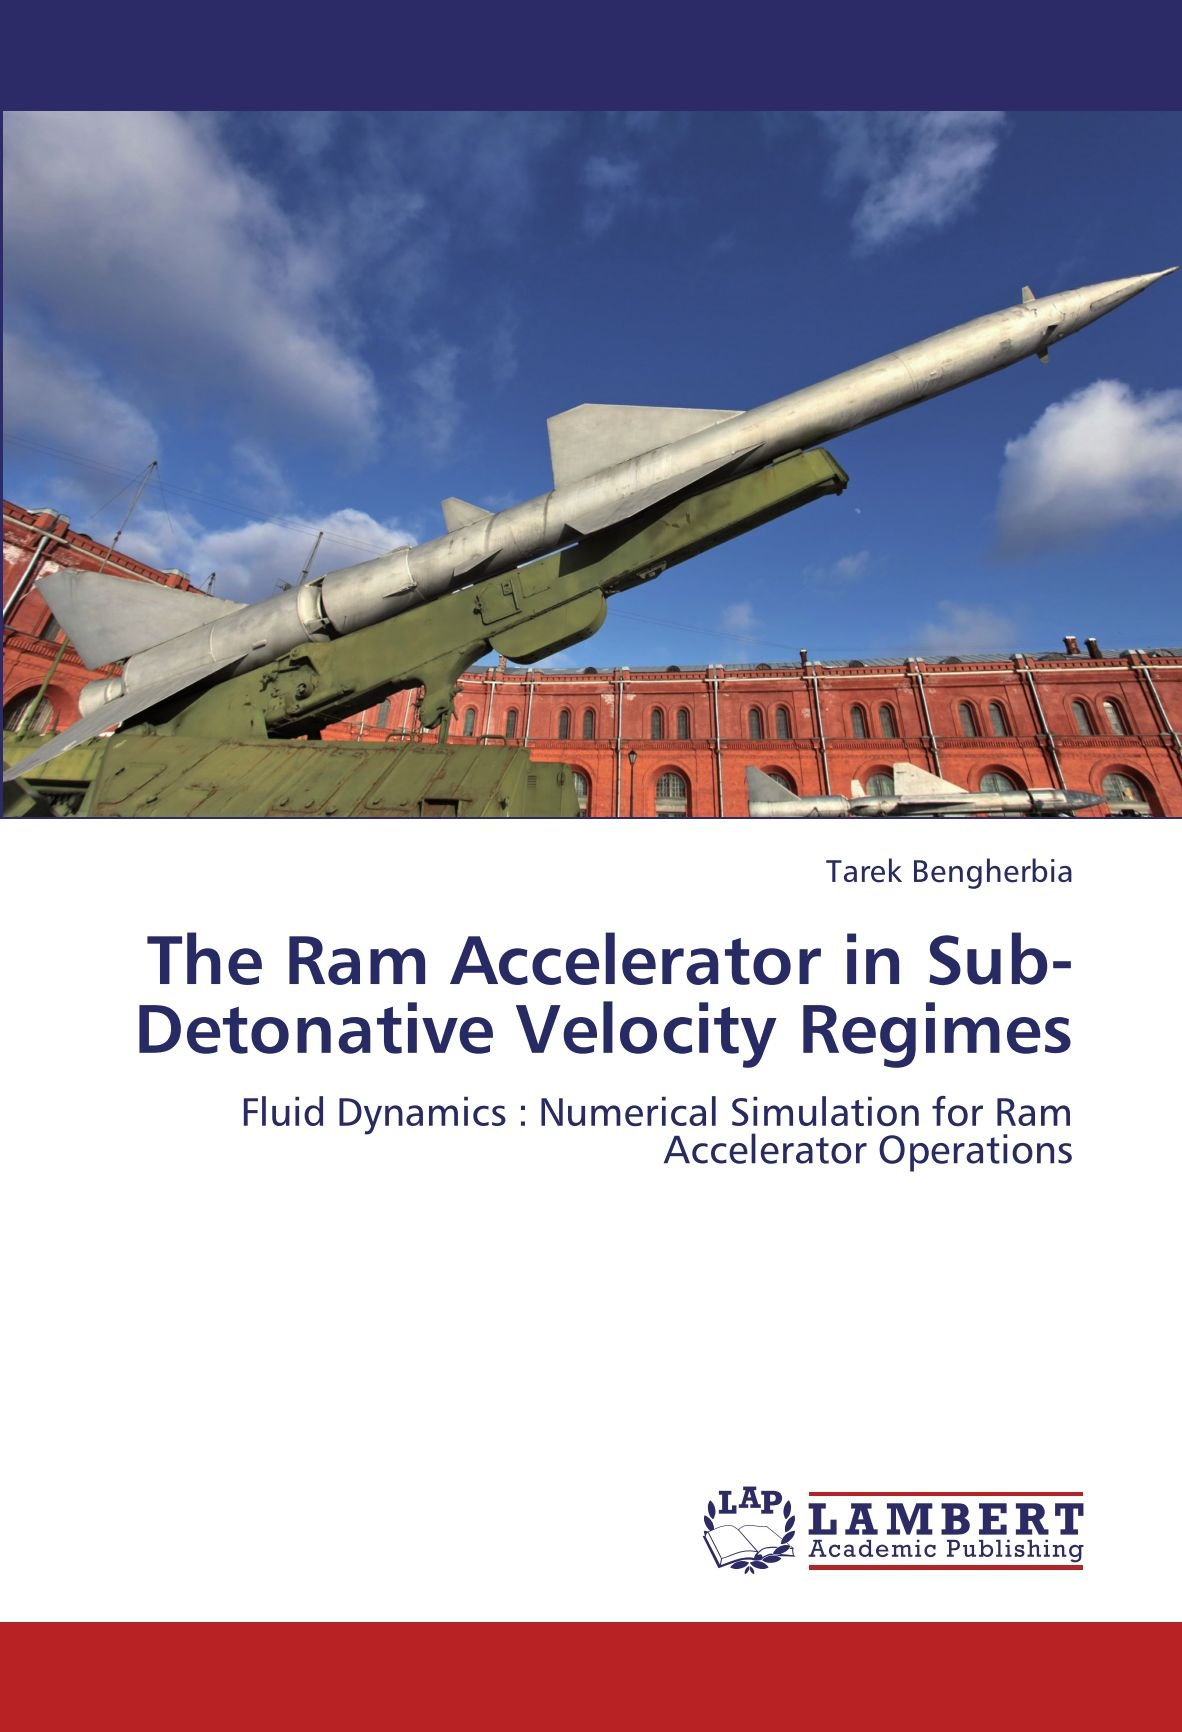 The Ram Accelerator in Sub-Detonative Velocity Regimes: Fluid Dynamics : Numerical Simulation for Ram Accelerator Operations pdf